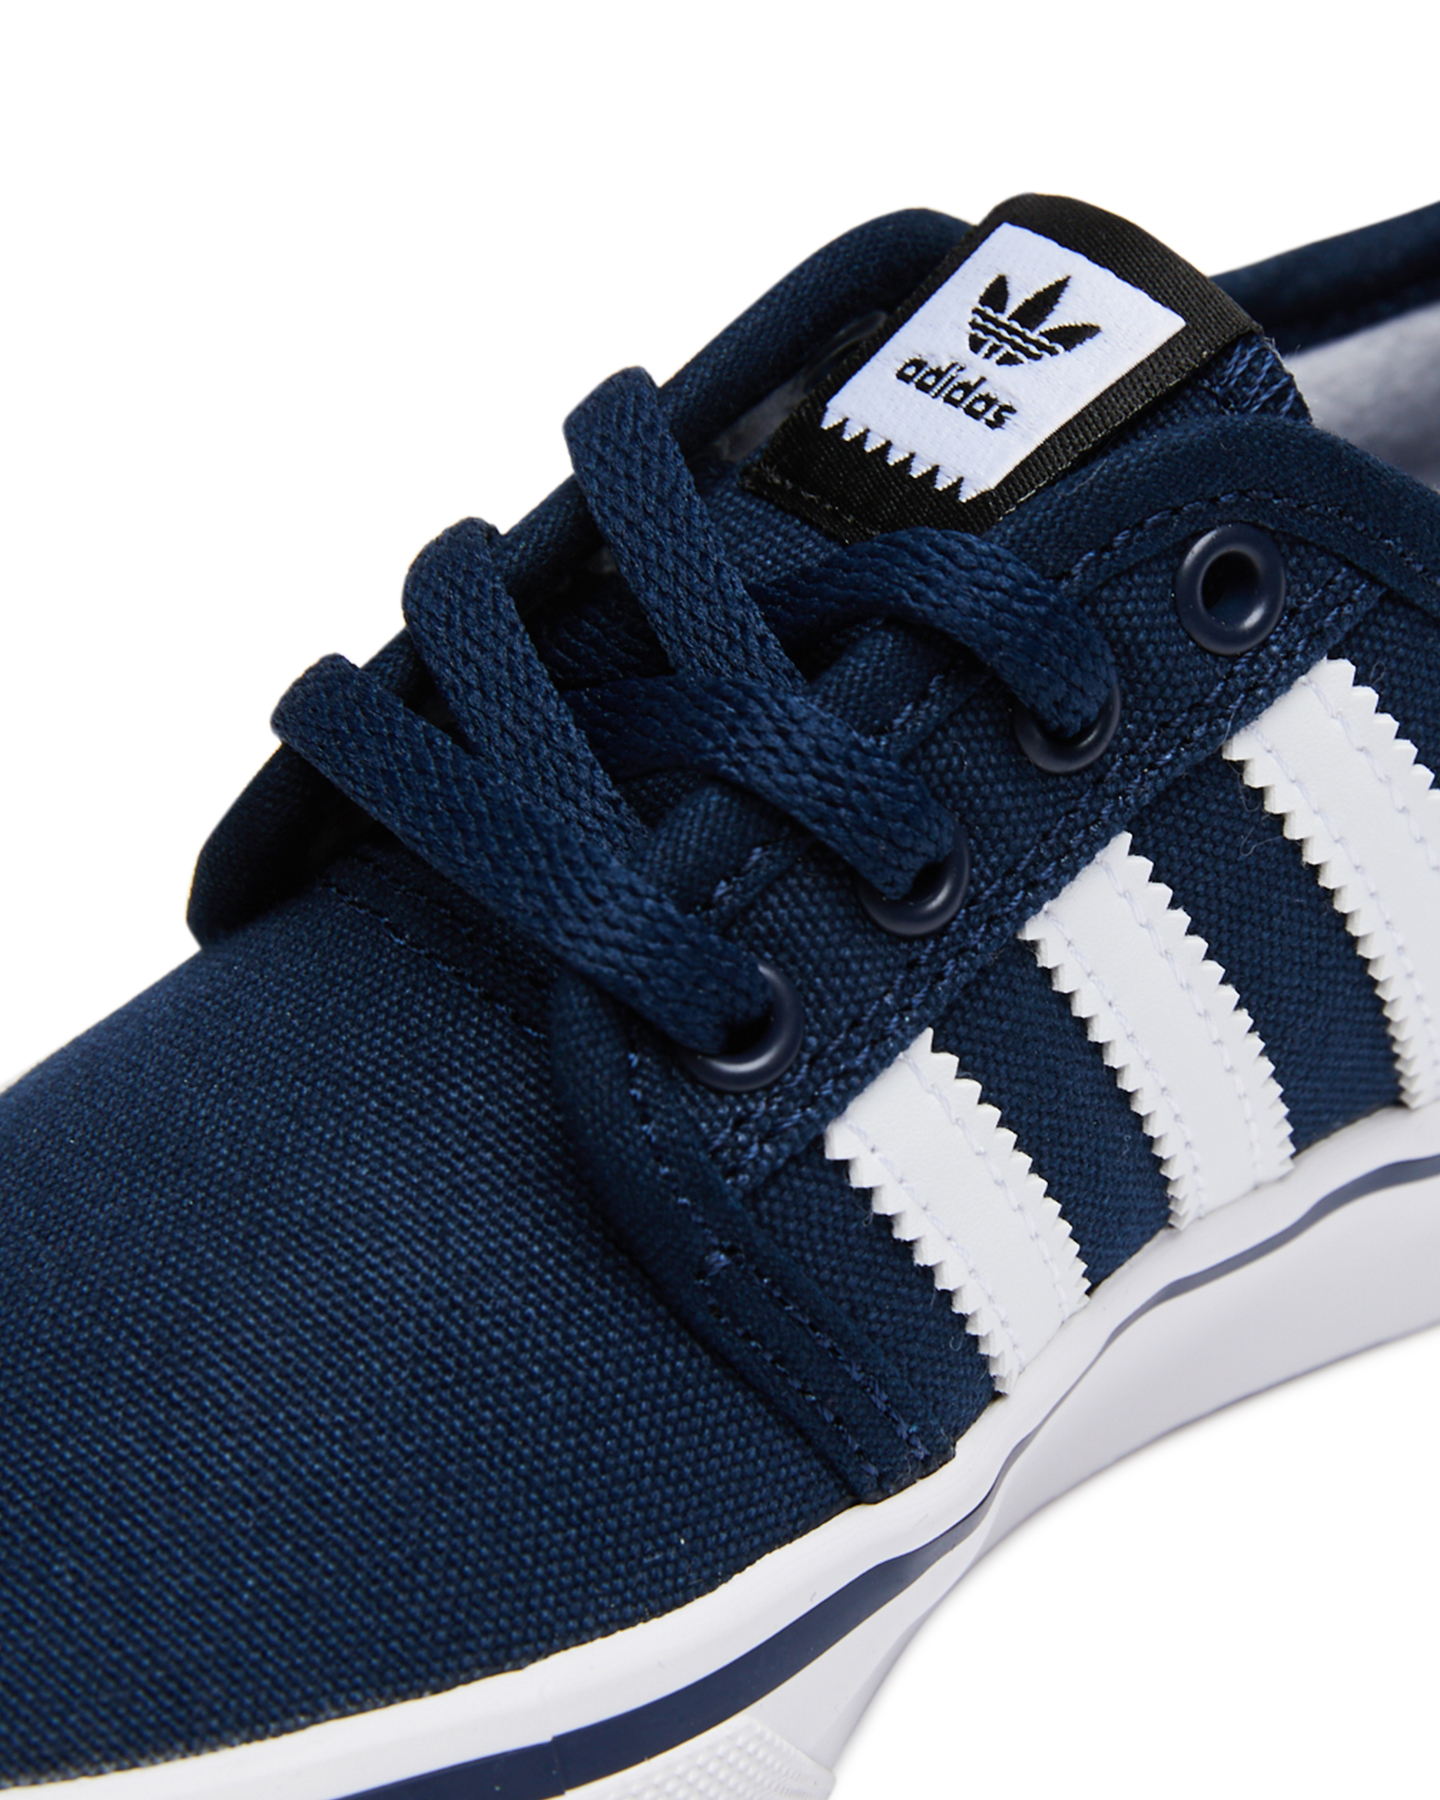 ... COLLEGIATE NAVY KIDS BOYS ADIDAS SNEAKERS - BY3840NVY ... 9b7f8dbf4bec